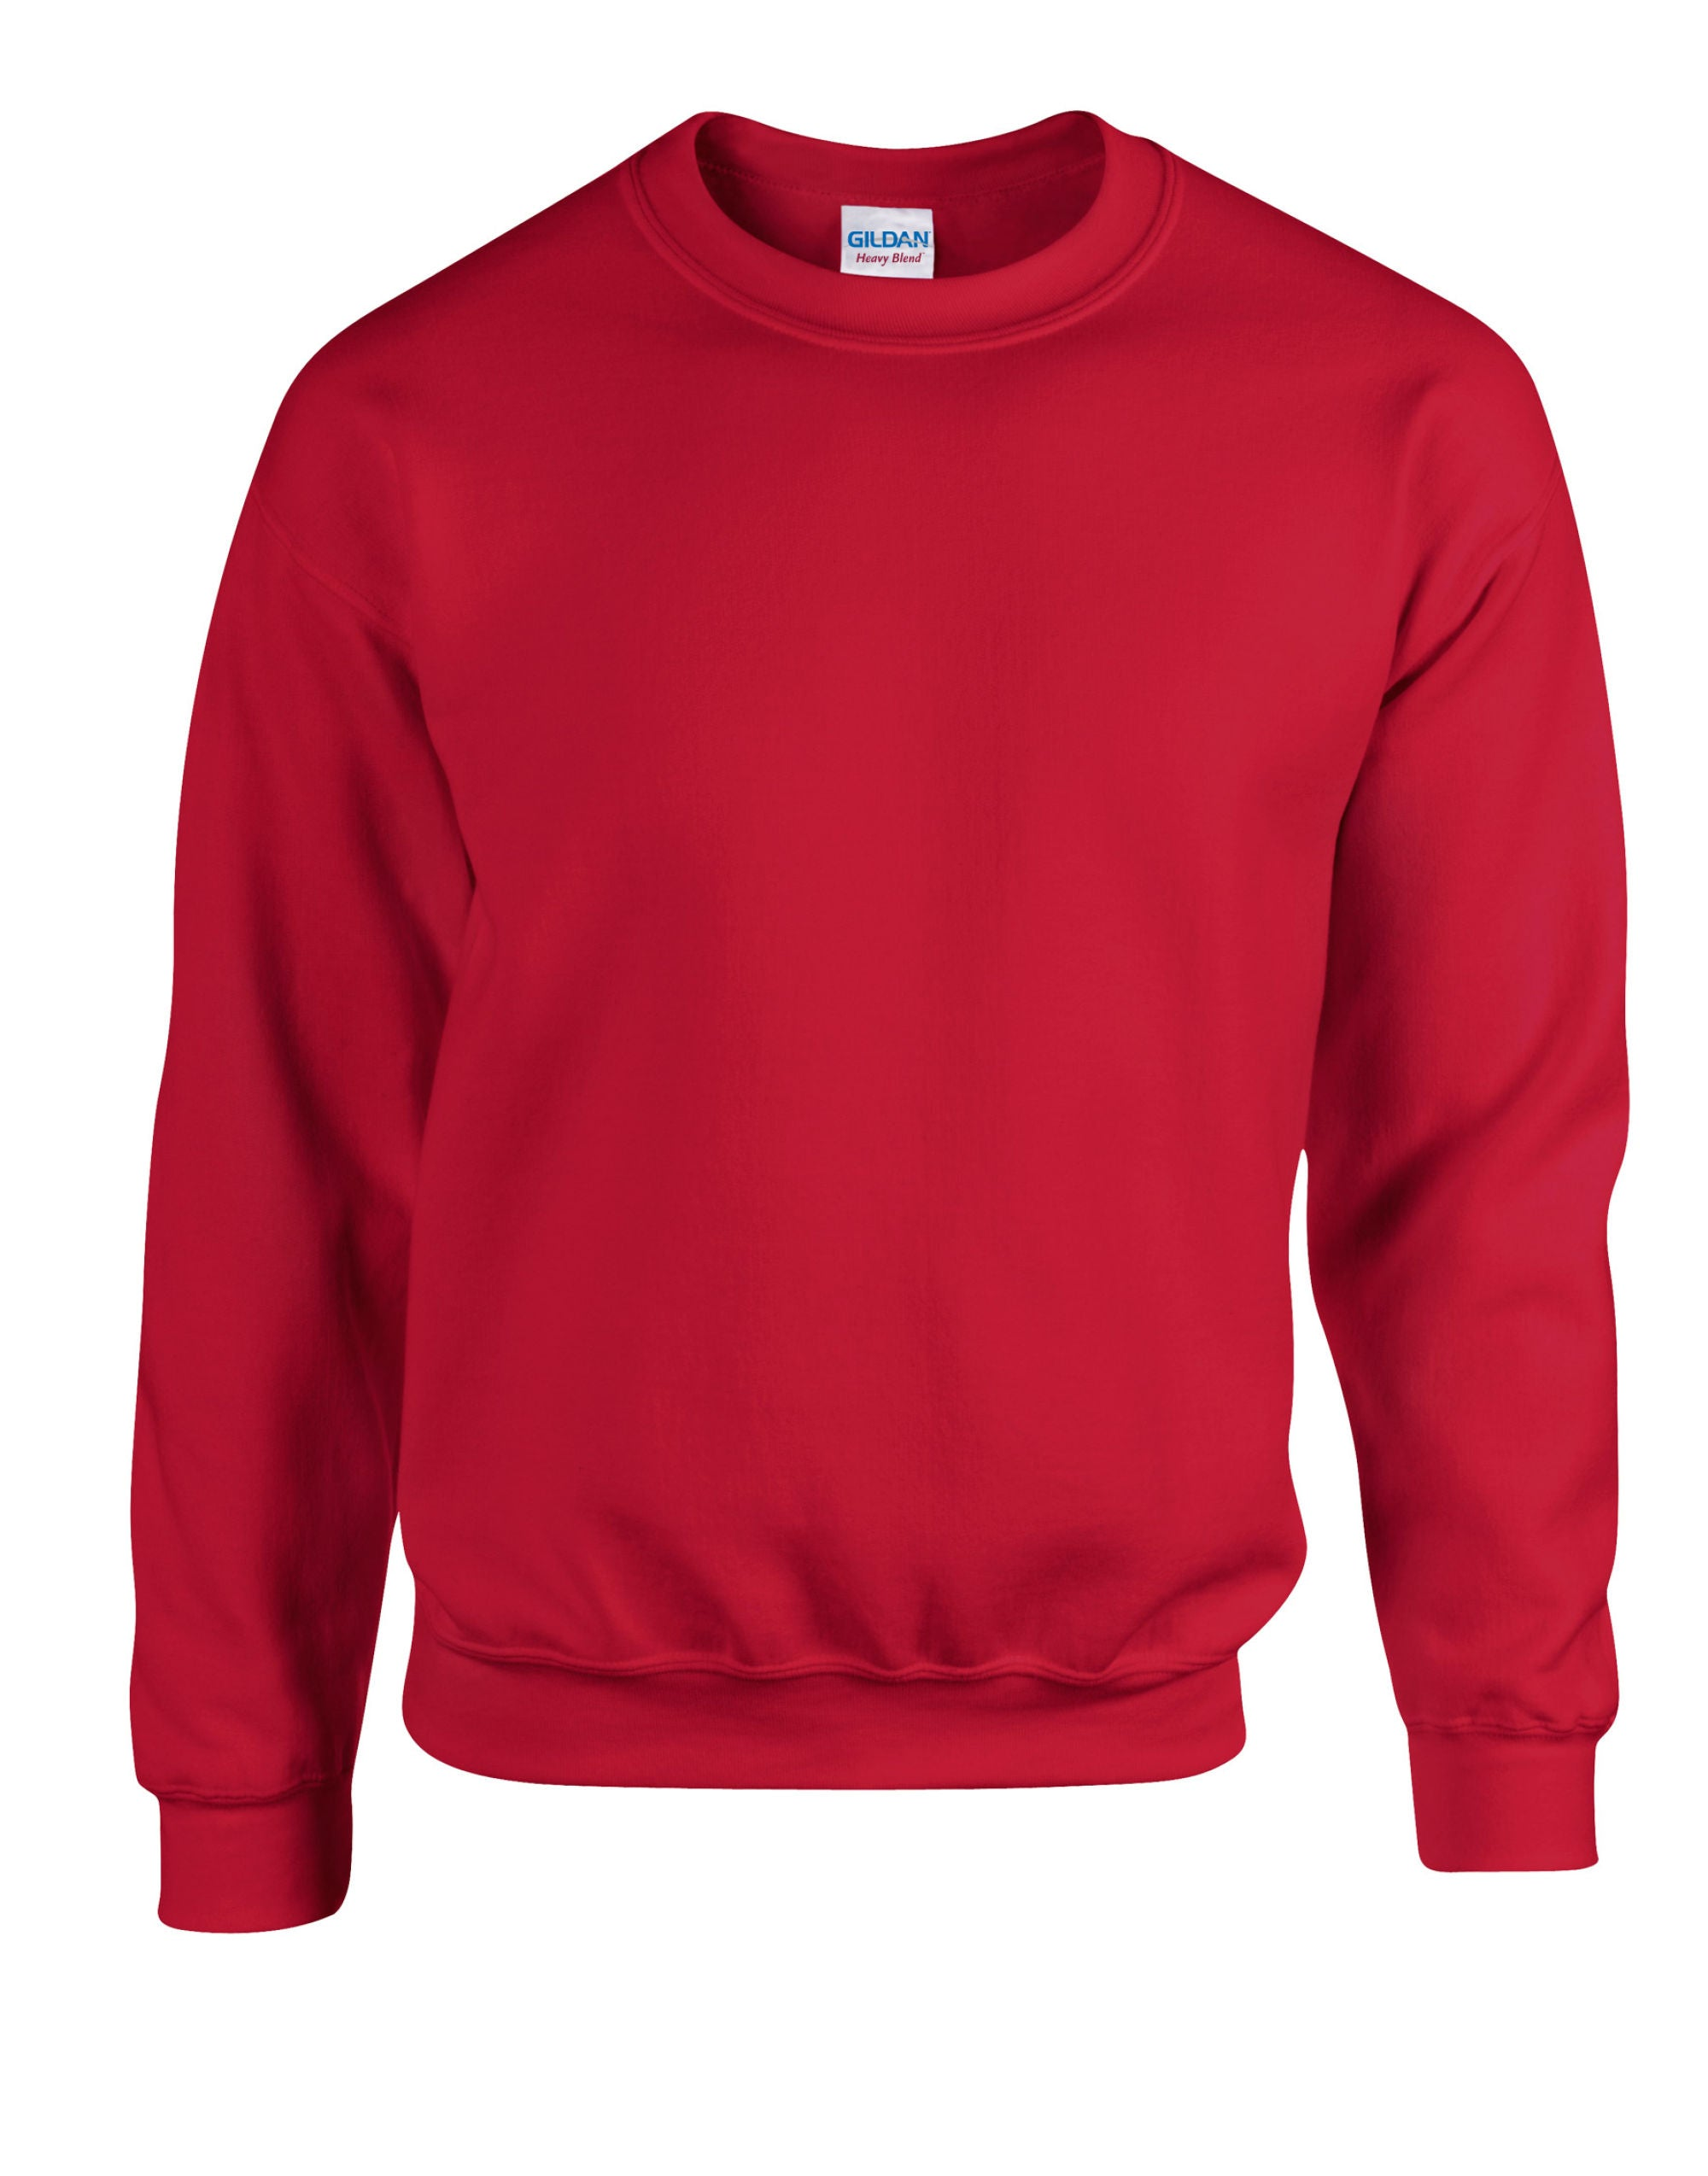 10 x Sweatshirts with Embroidered LOGO Front & PRINT on back